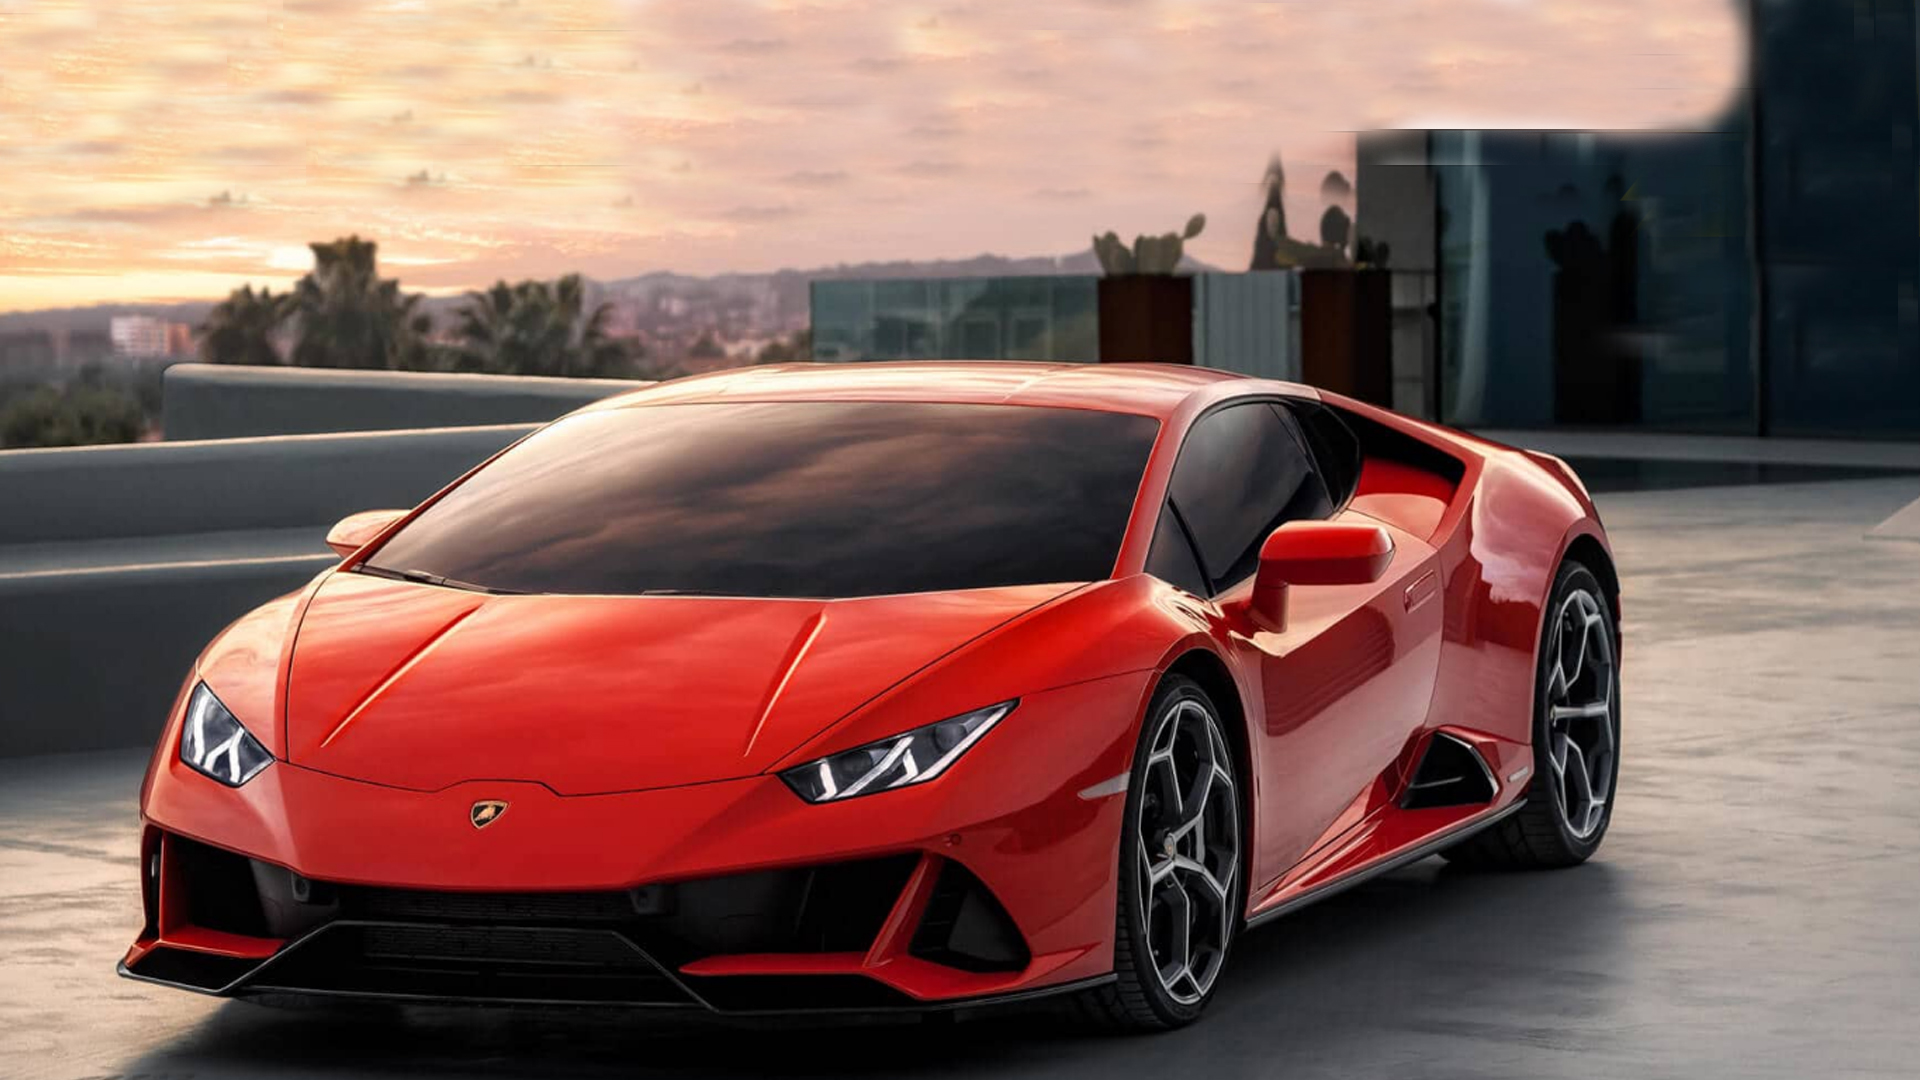 lamborghini huracan 2019 evo price mileage reviews. Black Bedroom Furniture Sets. Home Design Ideas